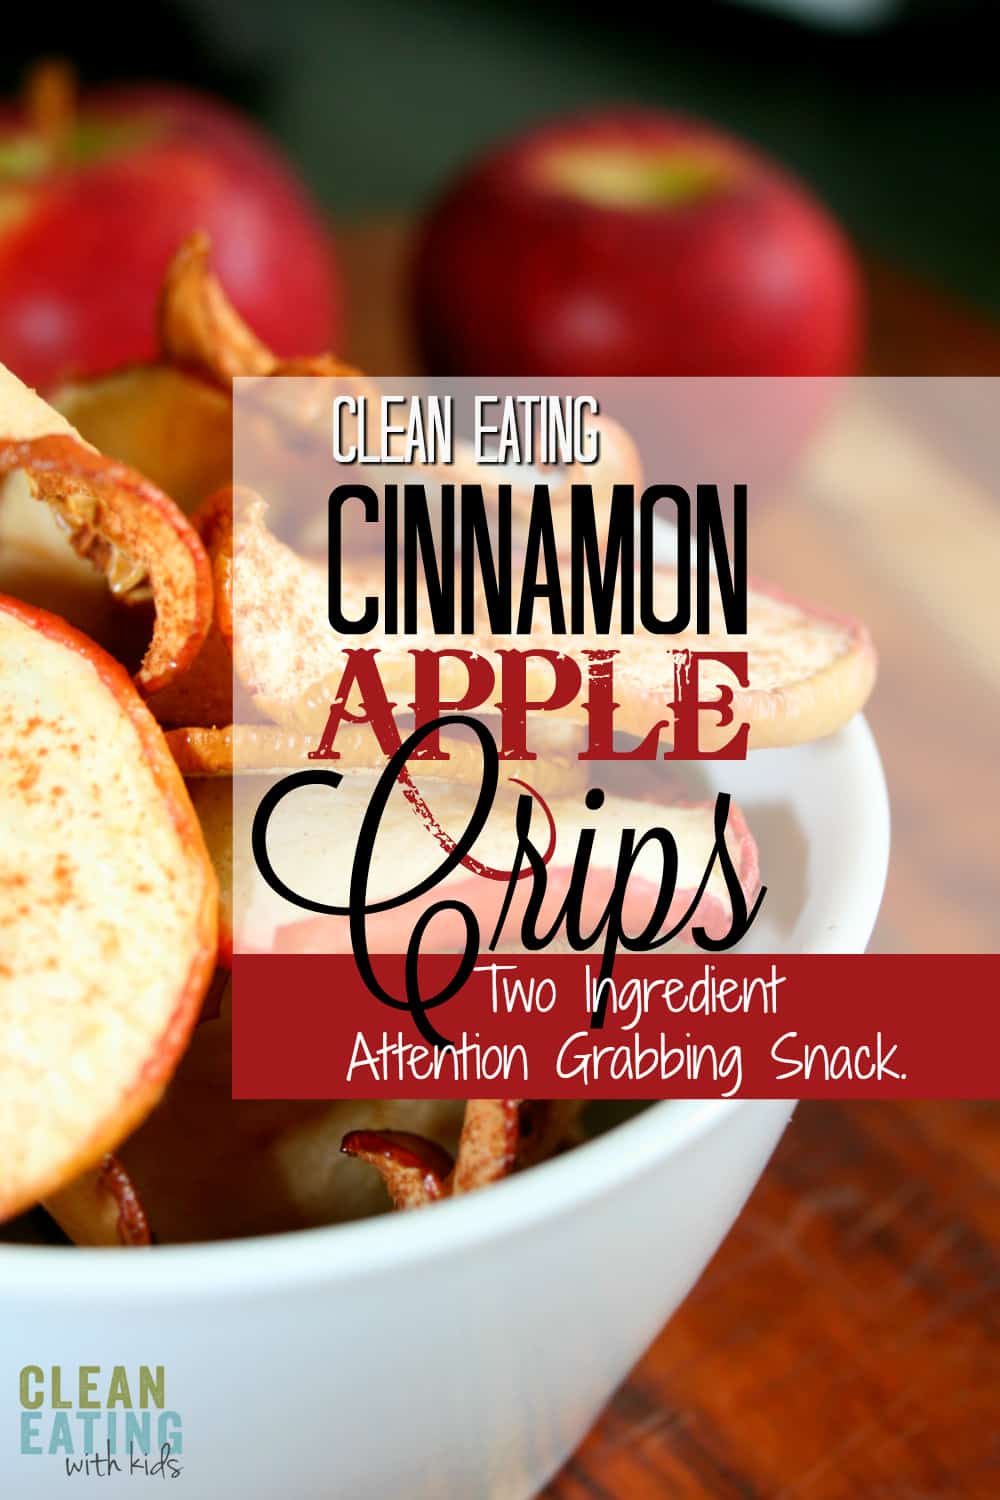 OK if I had to choose one recipe to impress the other parents. This is it. Two Ingredient clean eating cinnamon apple crisps!